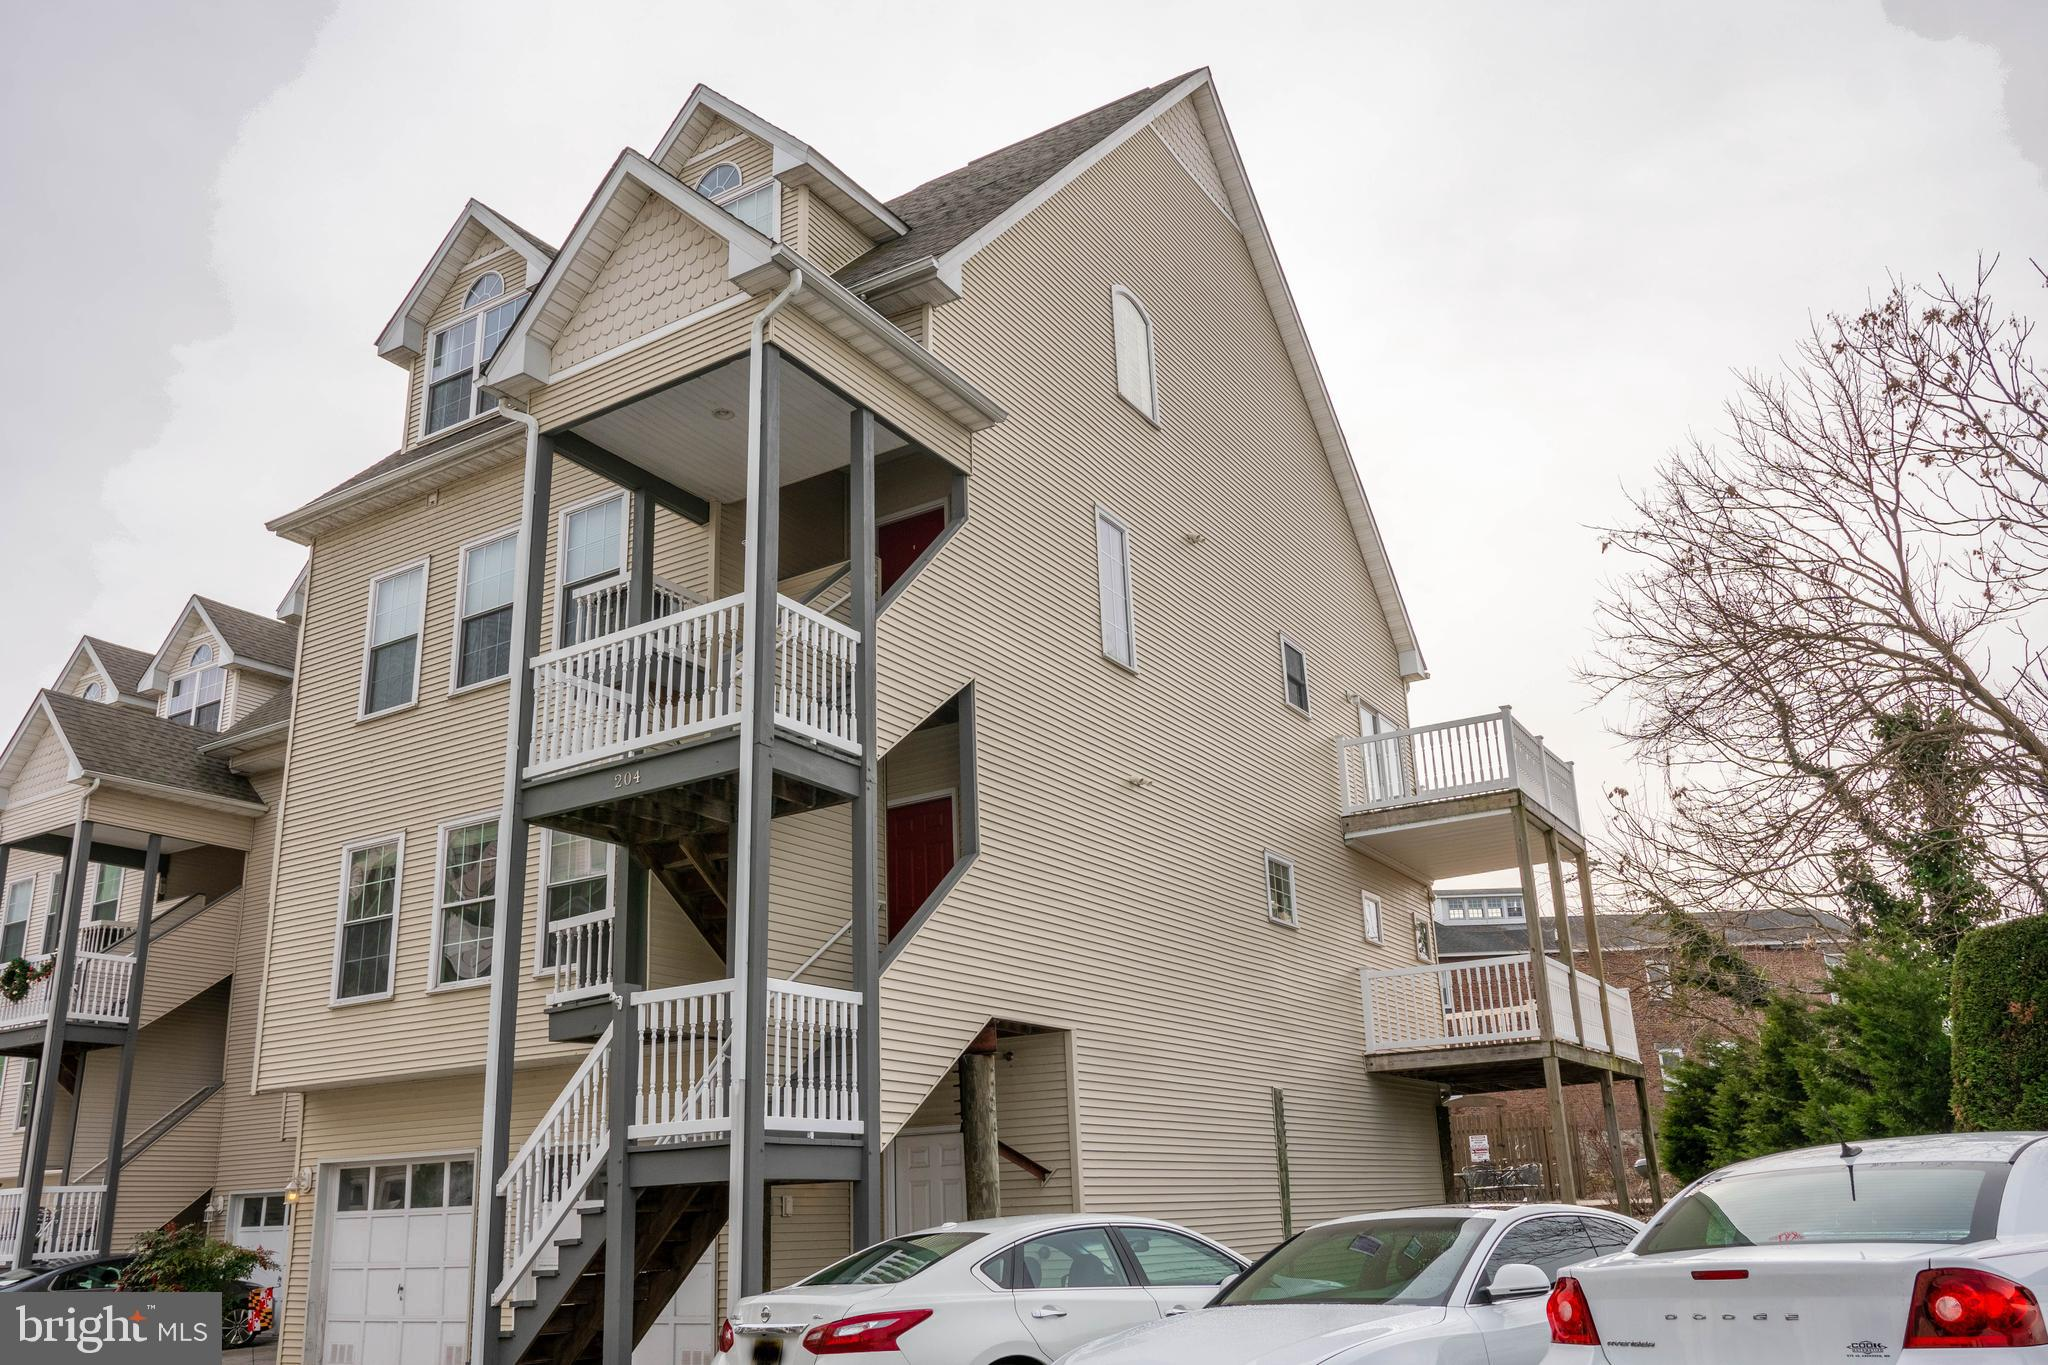 Don't miss your chance to live in beautiful downtown historical Havre De Grace by the water! This 2B